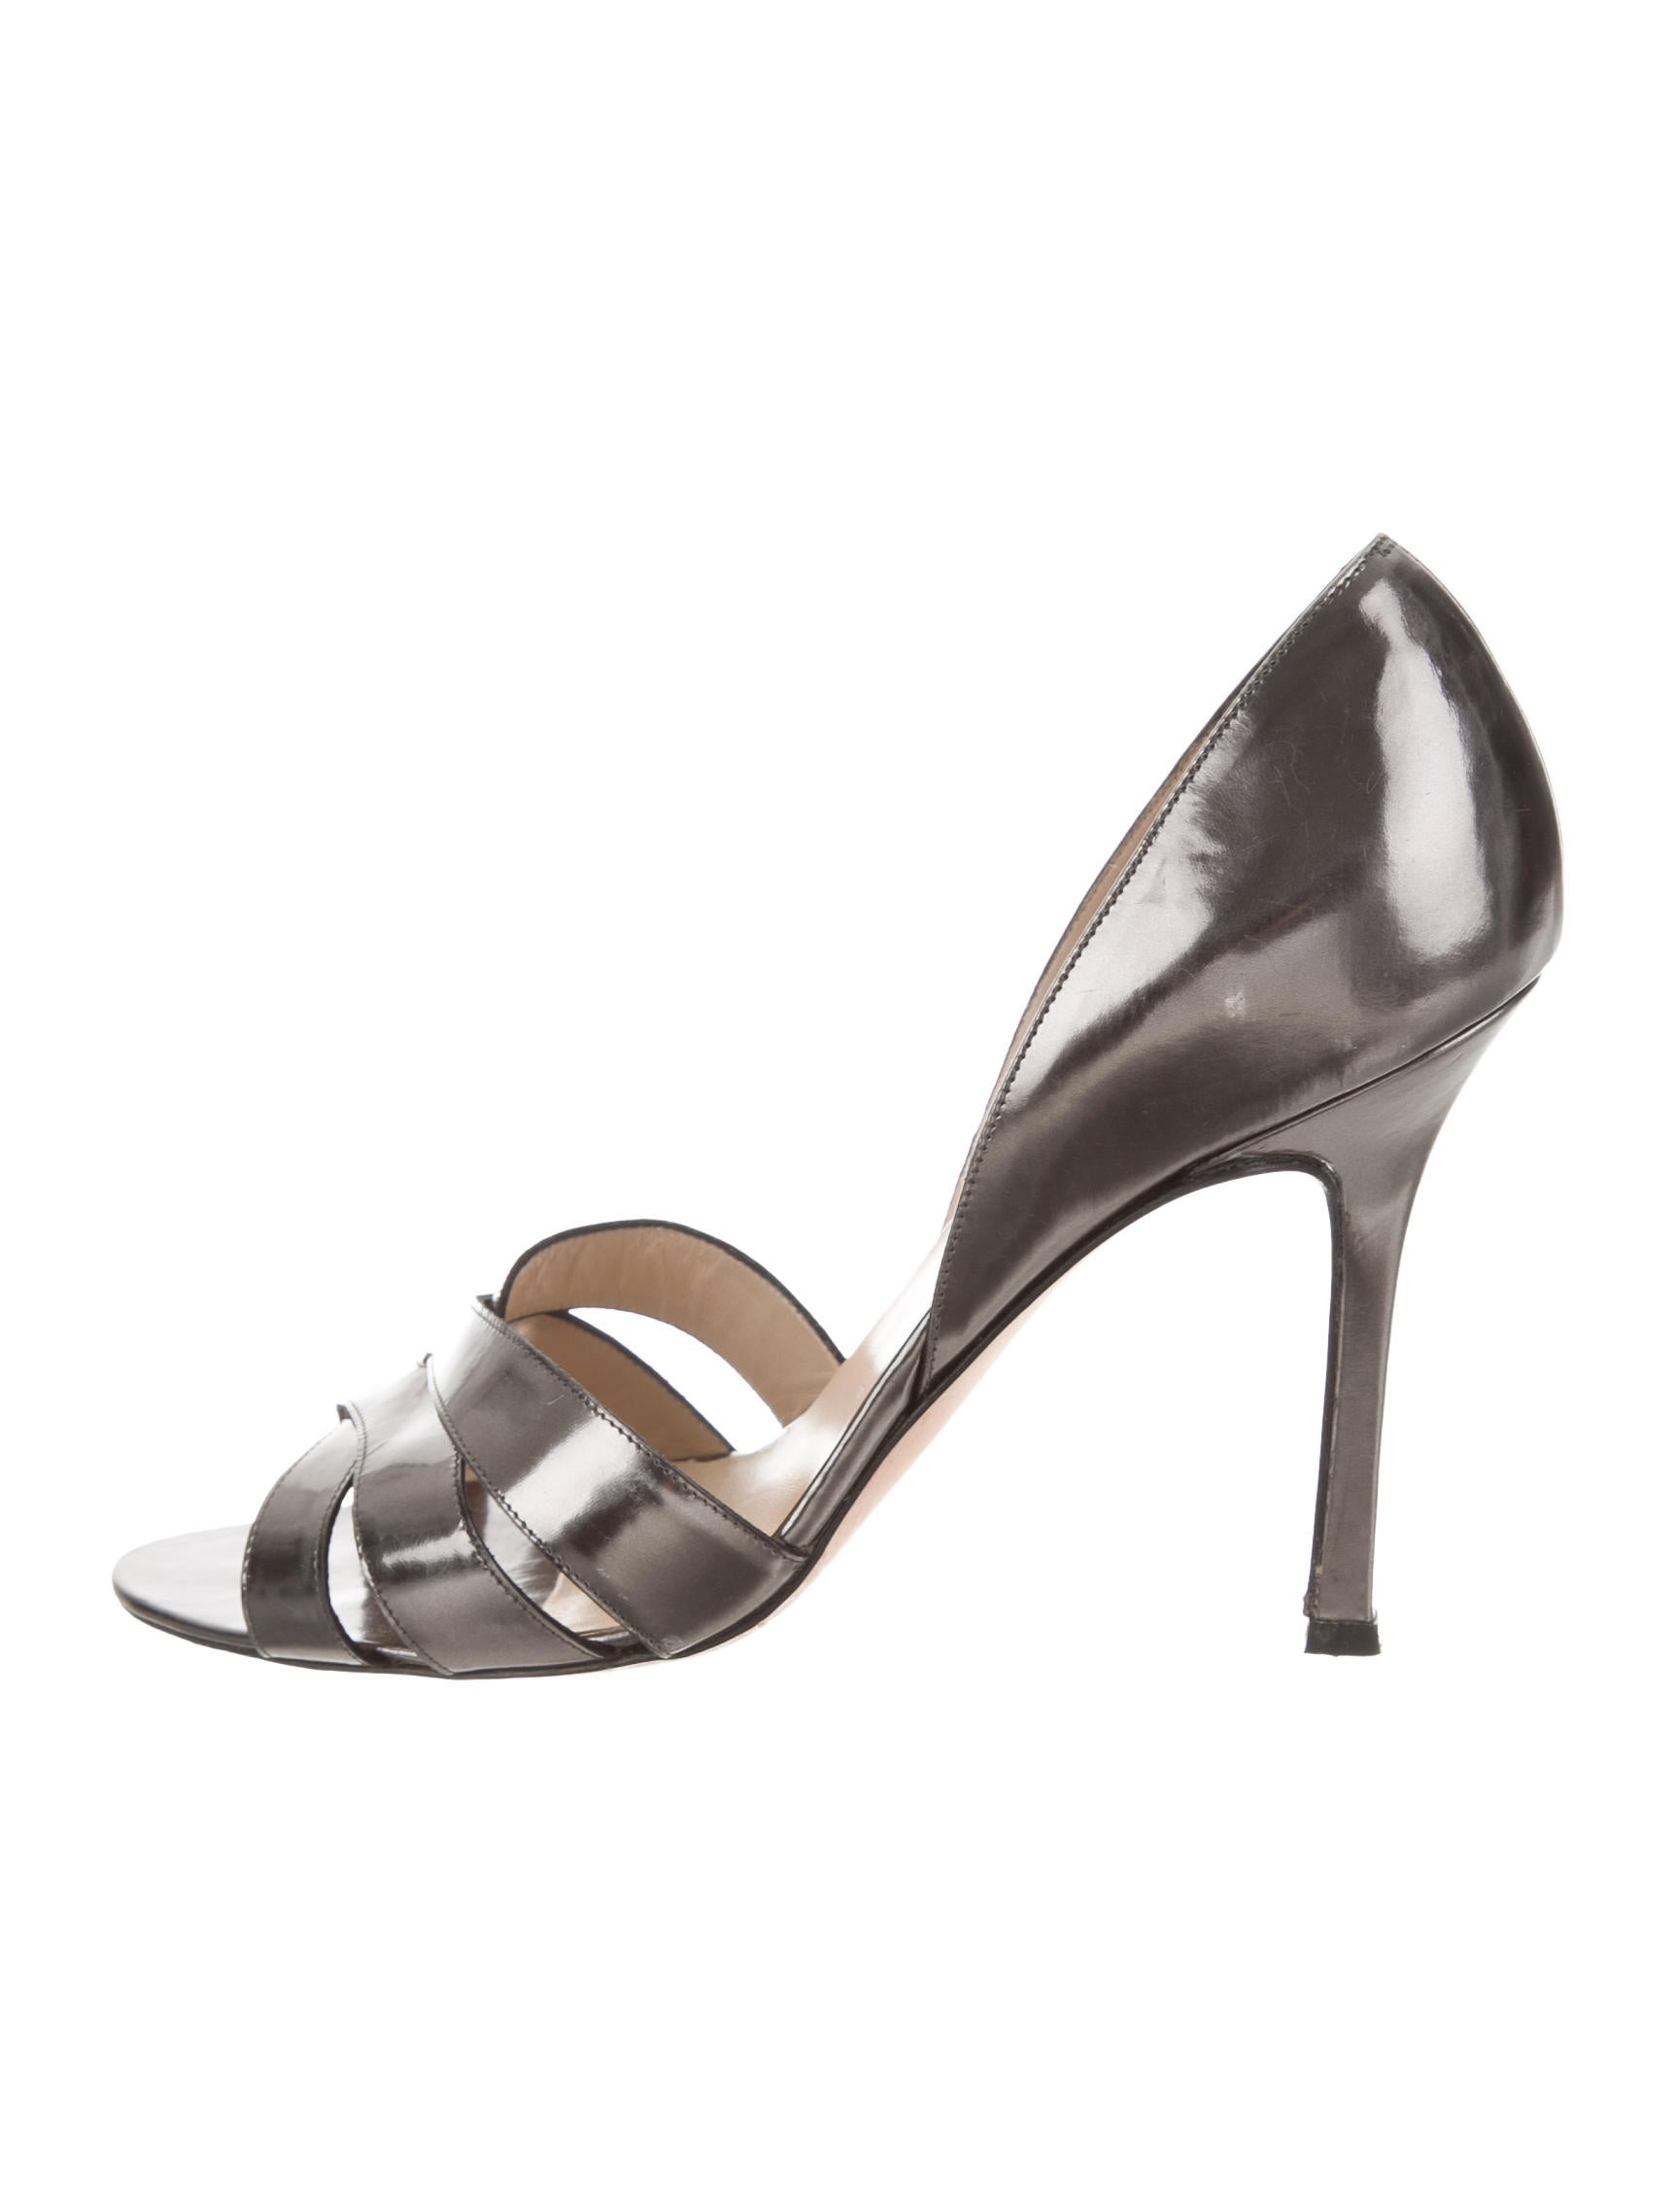 Manolo Blahnik Eleba Crossover Sandals w/ Tags store for sale clearance explore outlet browse discount how much limited edition pMn96s